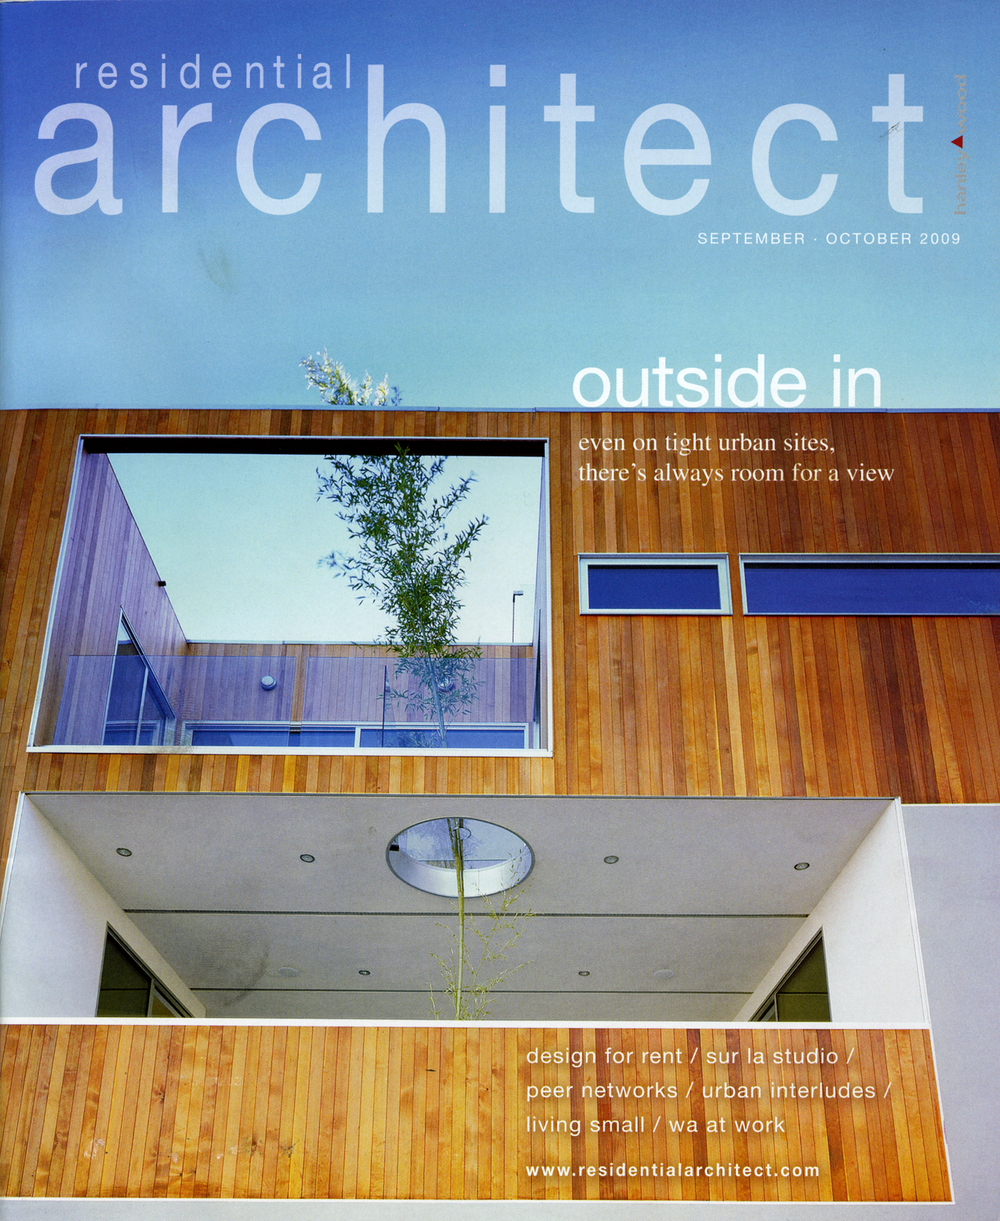 Residential architect magazine robitaillecurtis for Residential architect